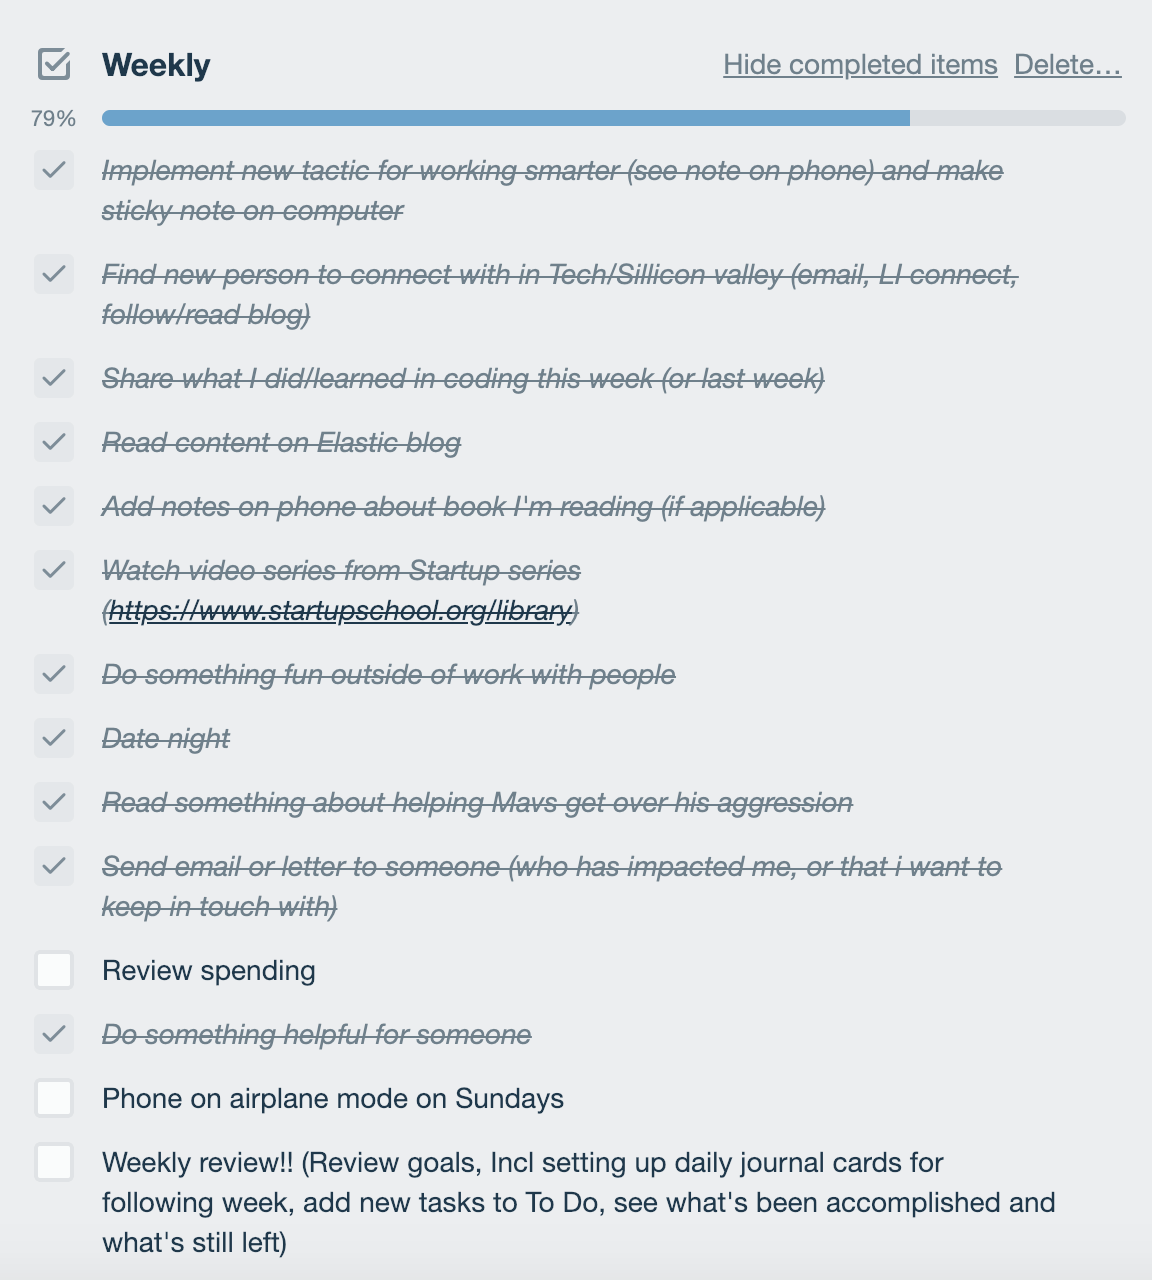 image regarding Daily Goals Checklist named How In direction of Create A Day-to-day Practice Tracker Within Trello (And Attain